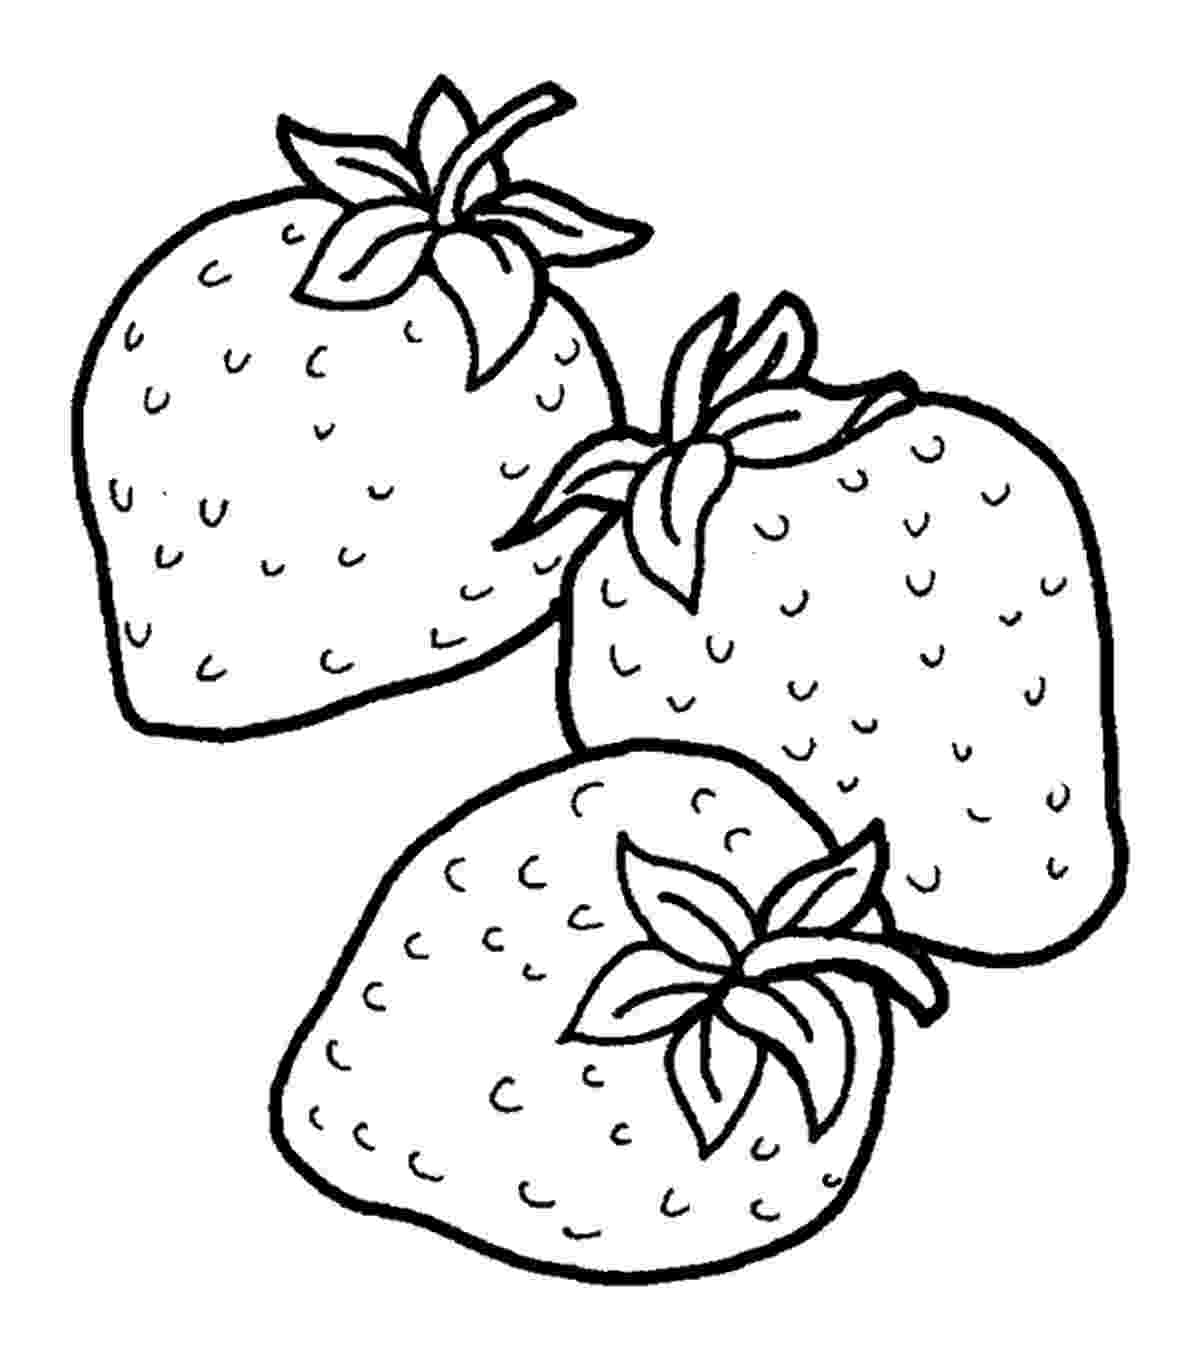 coloring pictures of strawberries strawberry coloring pages best coloring pages for kids of coloring pictures strawberries